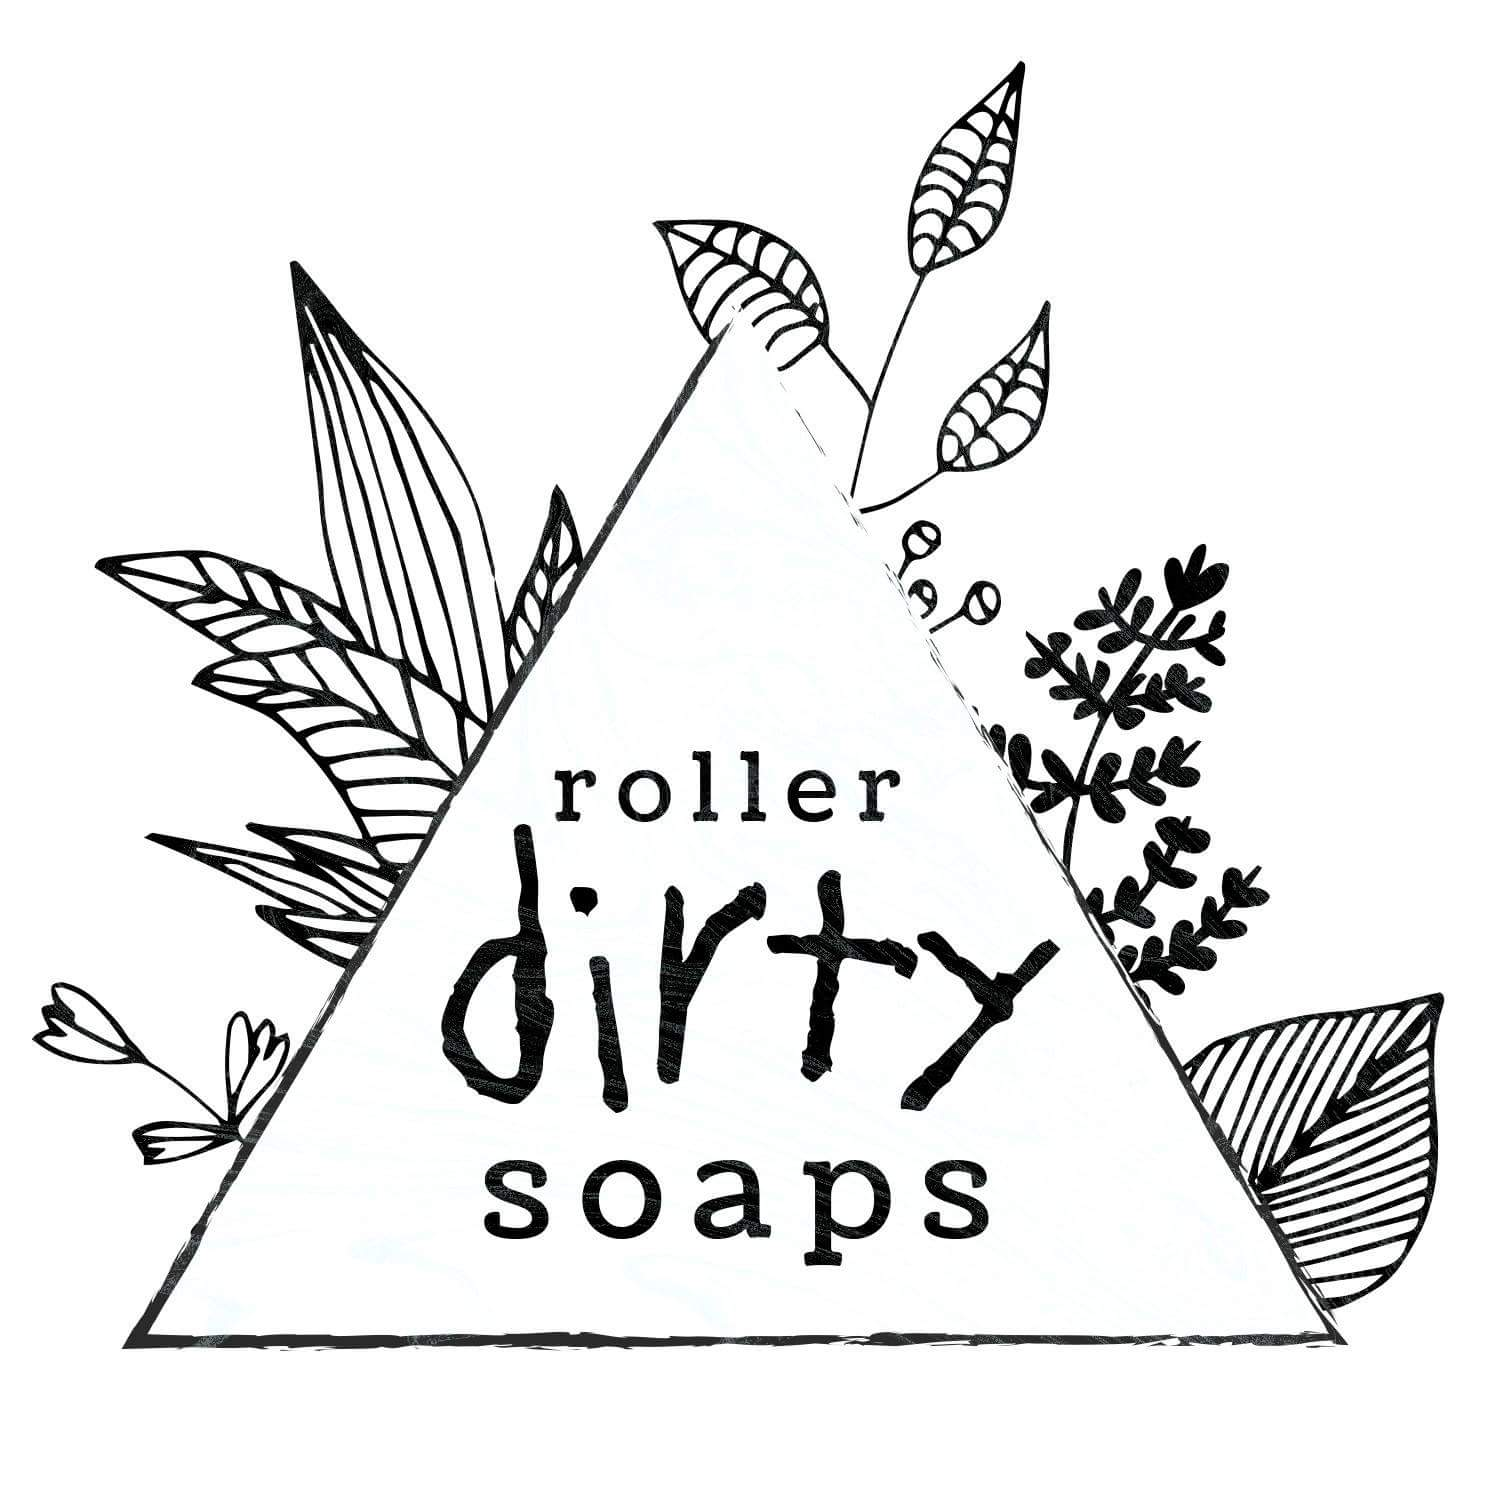 """""""I am supporting Derby Stance: Online Coaching Summit because it is the hard work all the coaches put in that allows everyone to learn and improve their game. It is also their teaching and support that allows derby to be such an open and inclusive community to be a part of.""""    roller dirty soaps  delivers worldwide and is offering a discount voucher with every ticket purchased for a live seminar!"""